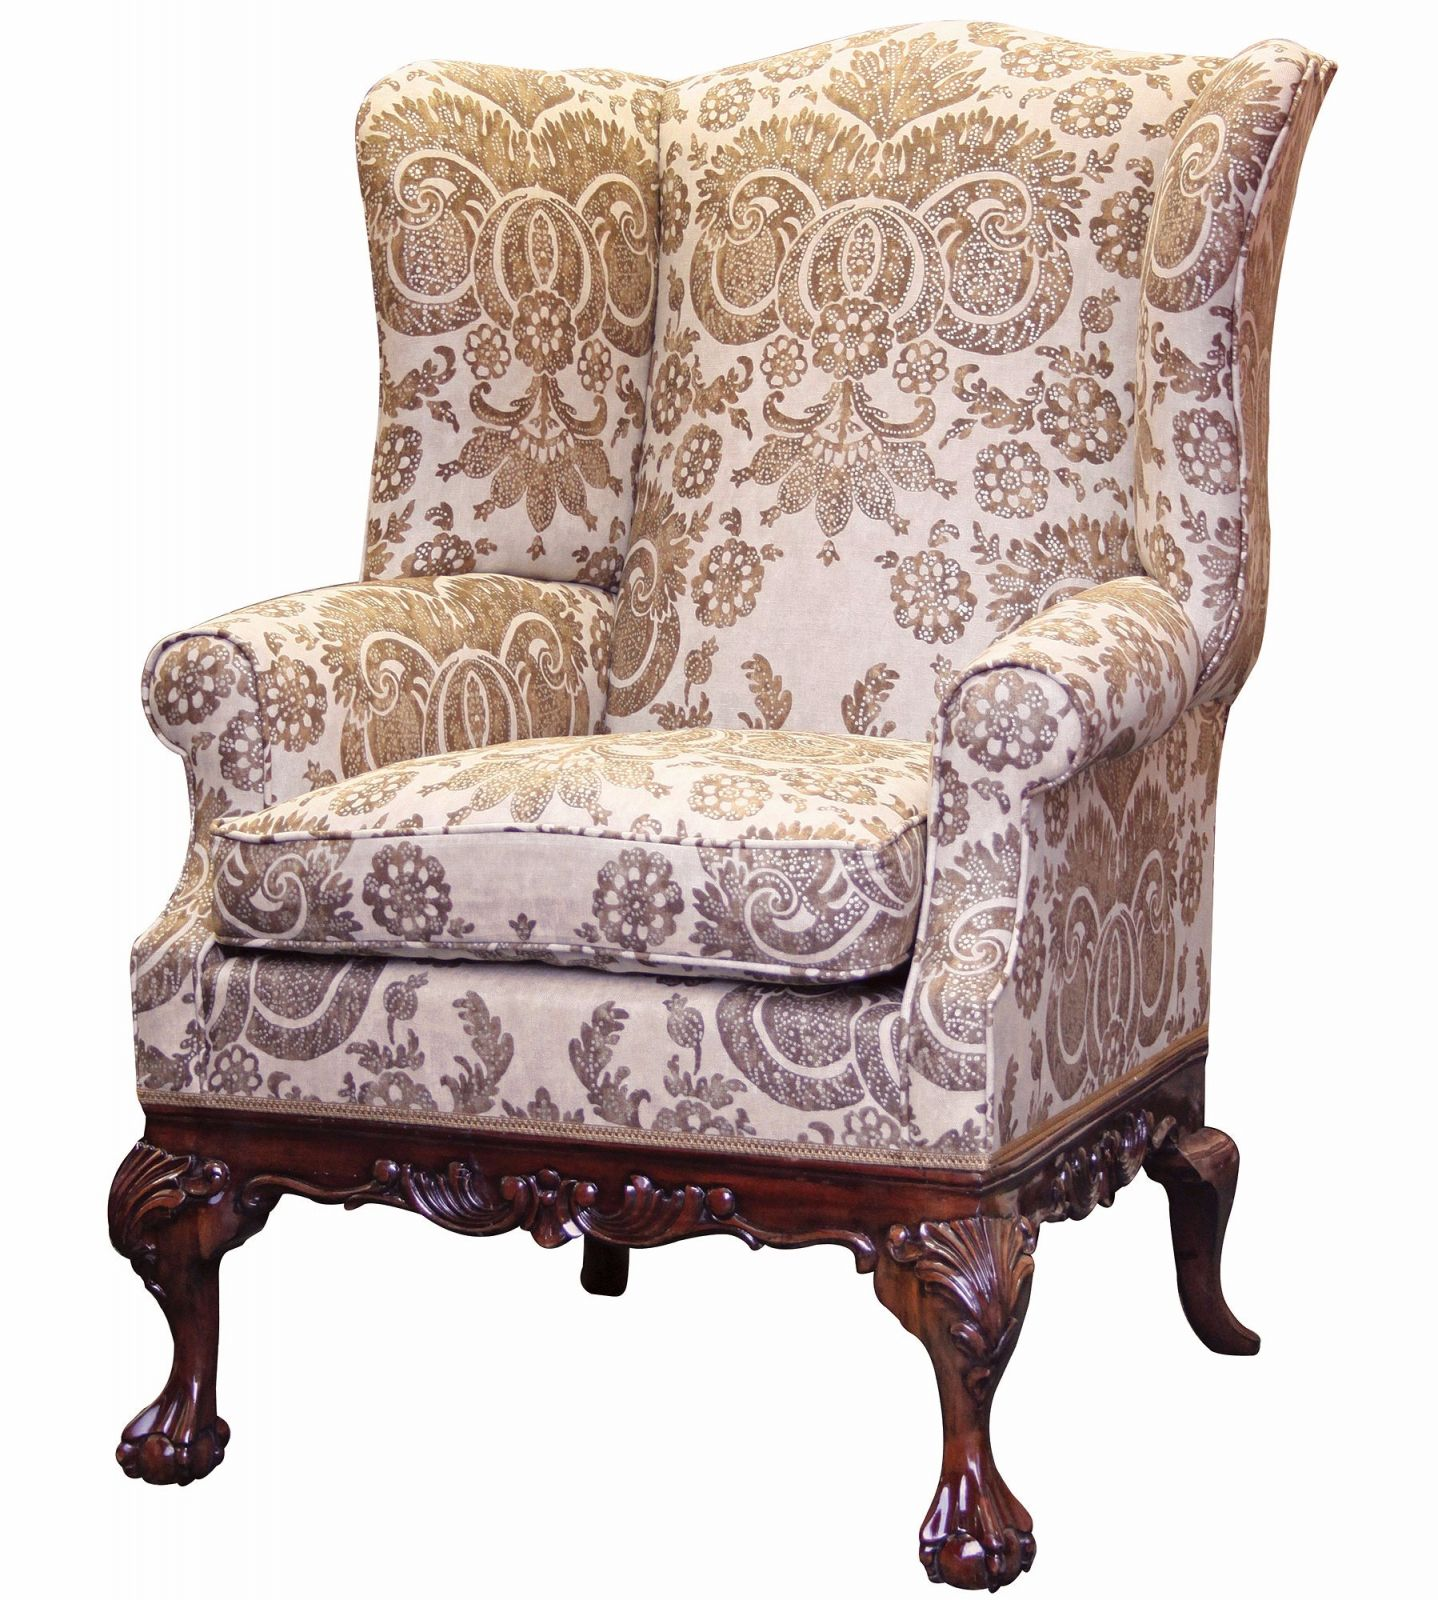 Sonning wing chair in Irving Linen